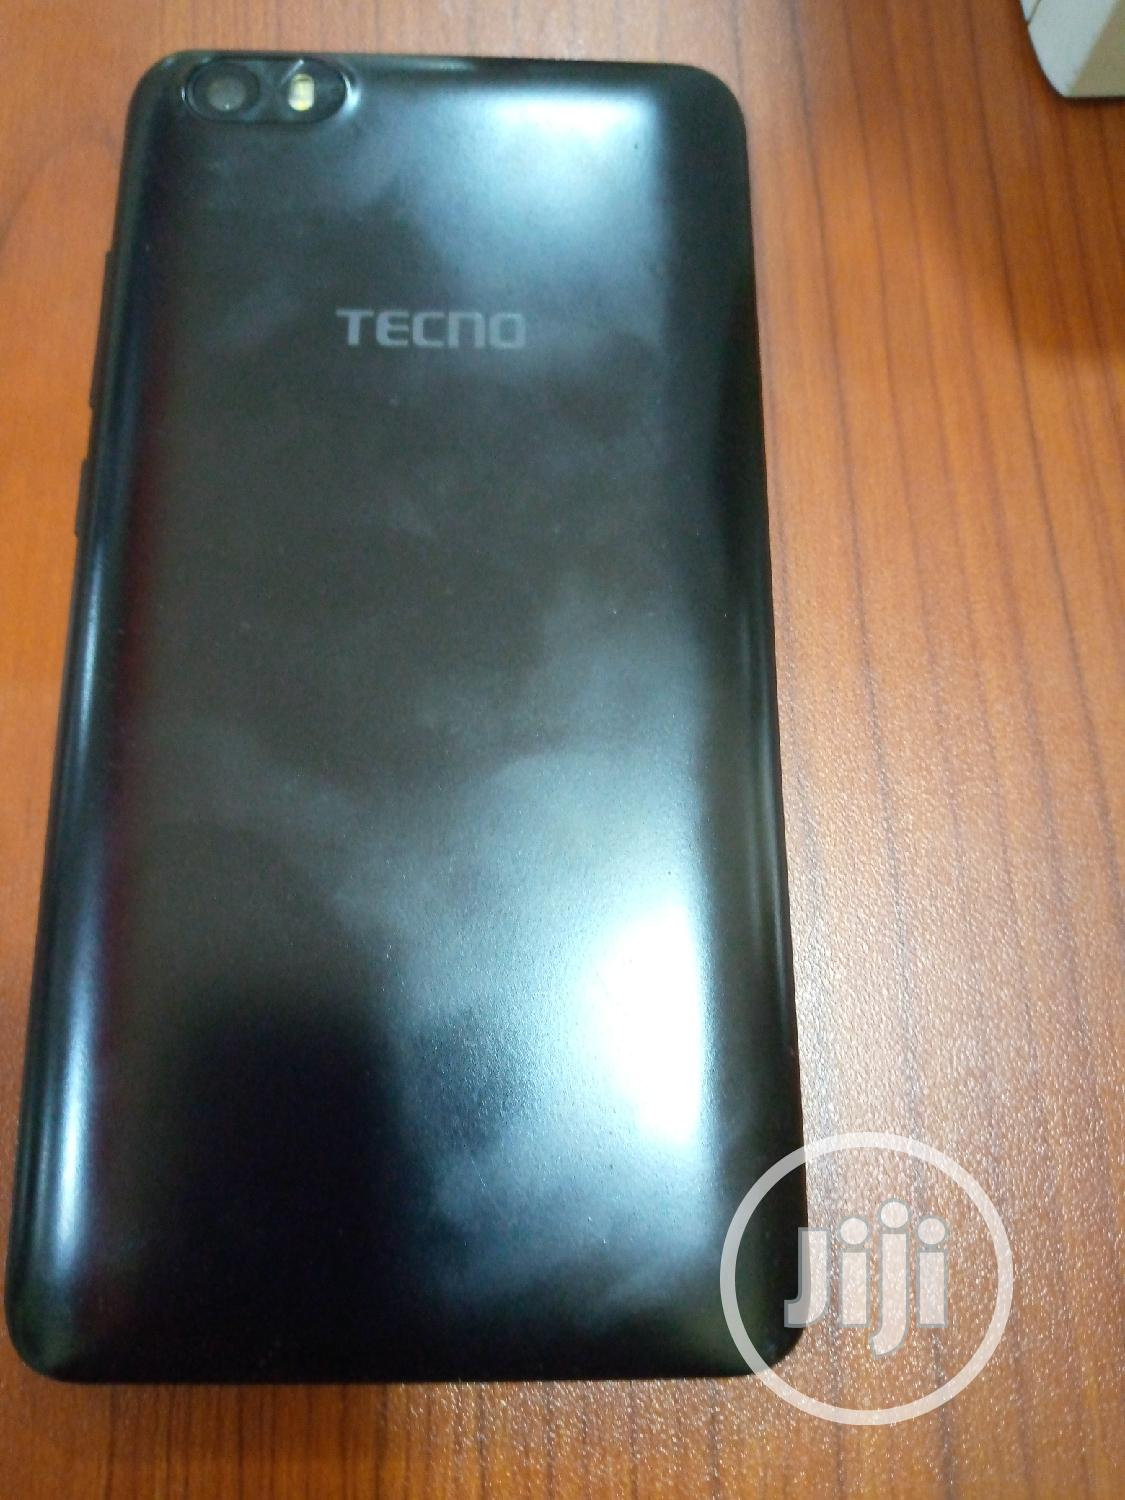 Tecno F1 8 GB Black | Mobile Phones for sale in Kado, Abuja (FCT) State, Nigeria